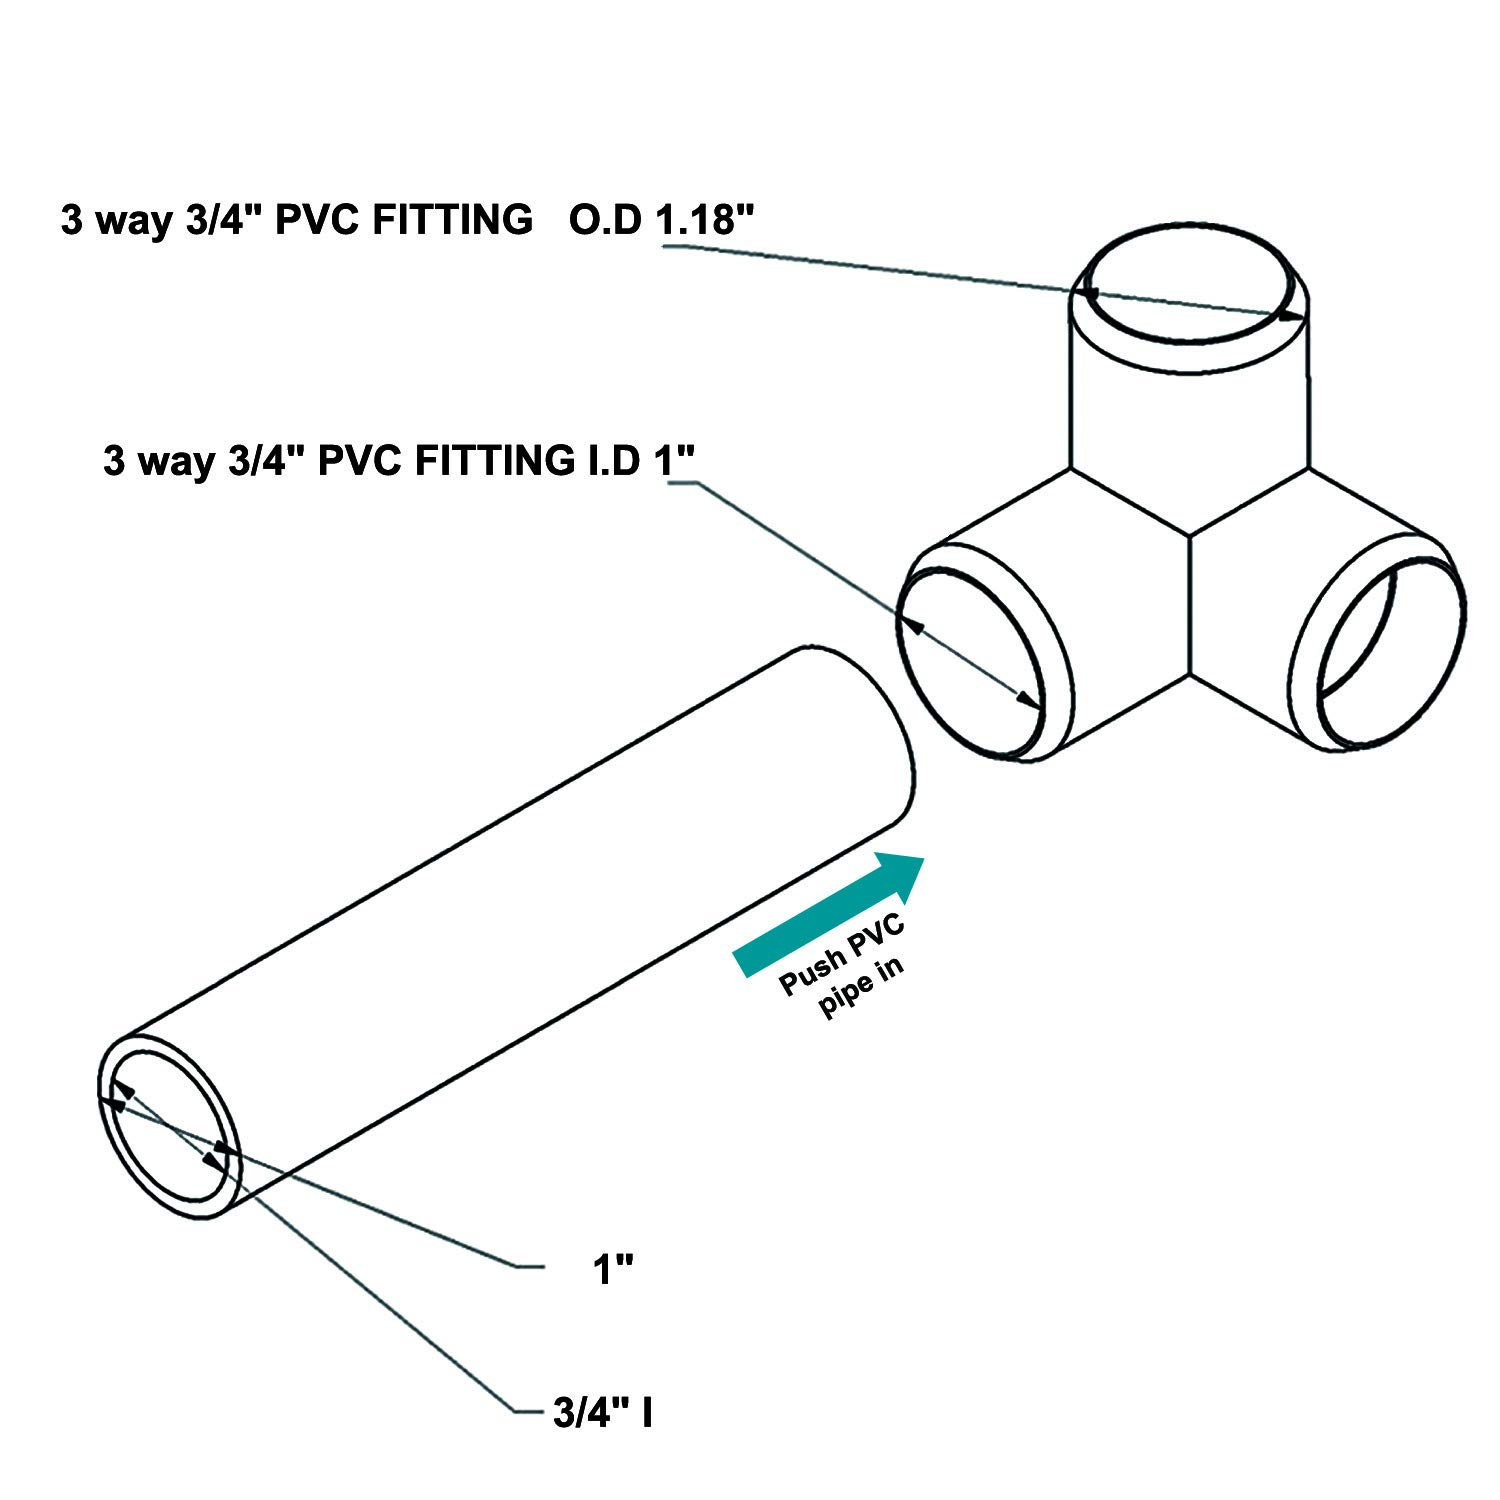 1 Inch, 5-Way Elbow Homend PVC Elbow Corner Side Outlet Tee Fitting Build Heavy Duty PVC Furniture PVC Elbow Fittings Furniture Grade Pack of 10 White